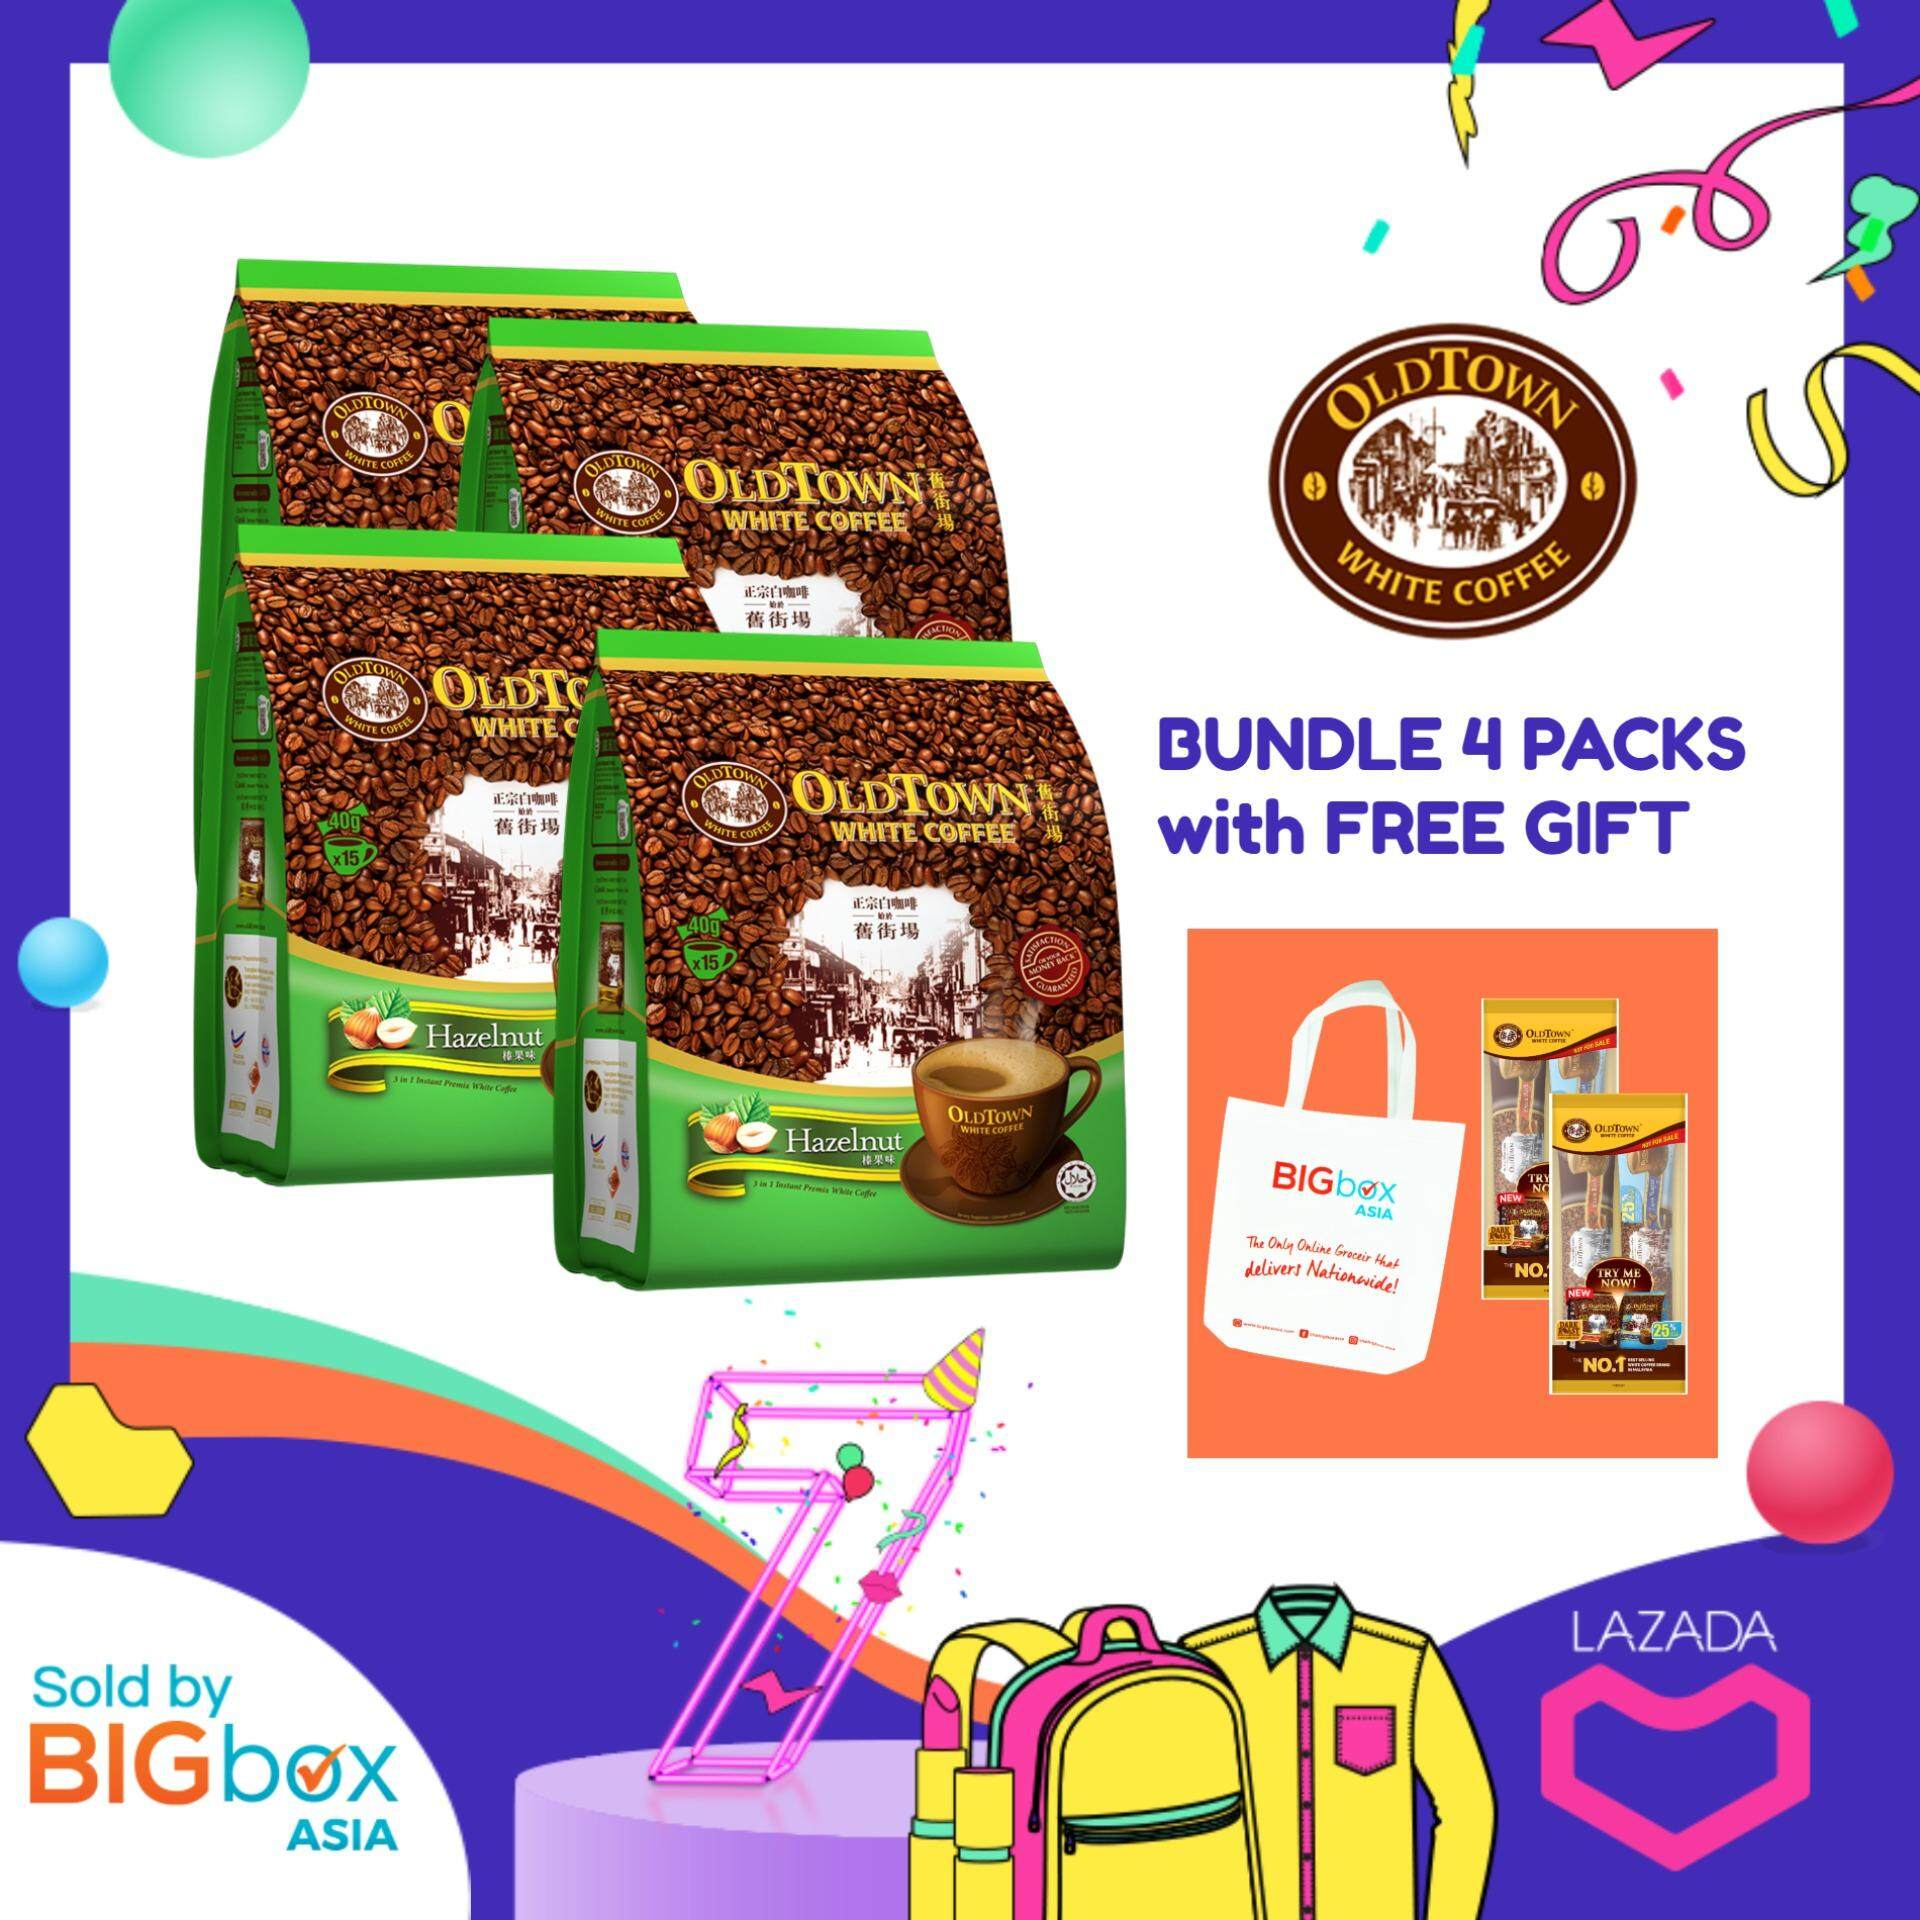 Oldtown White Coffee 3in1 Hazelnut 38g X 15sticks [bundle Of 4 With Free Gift] By Bigbox Asia.